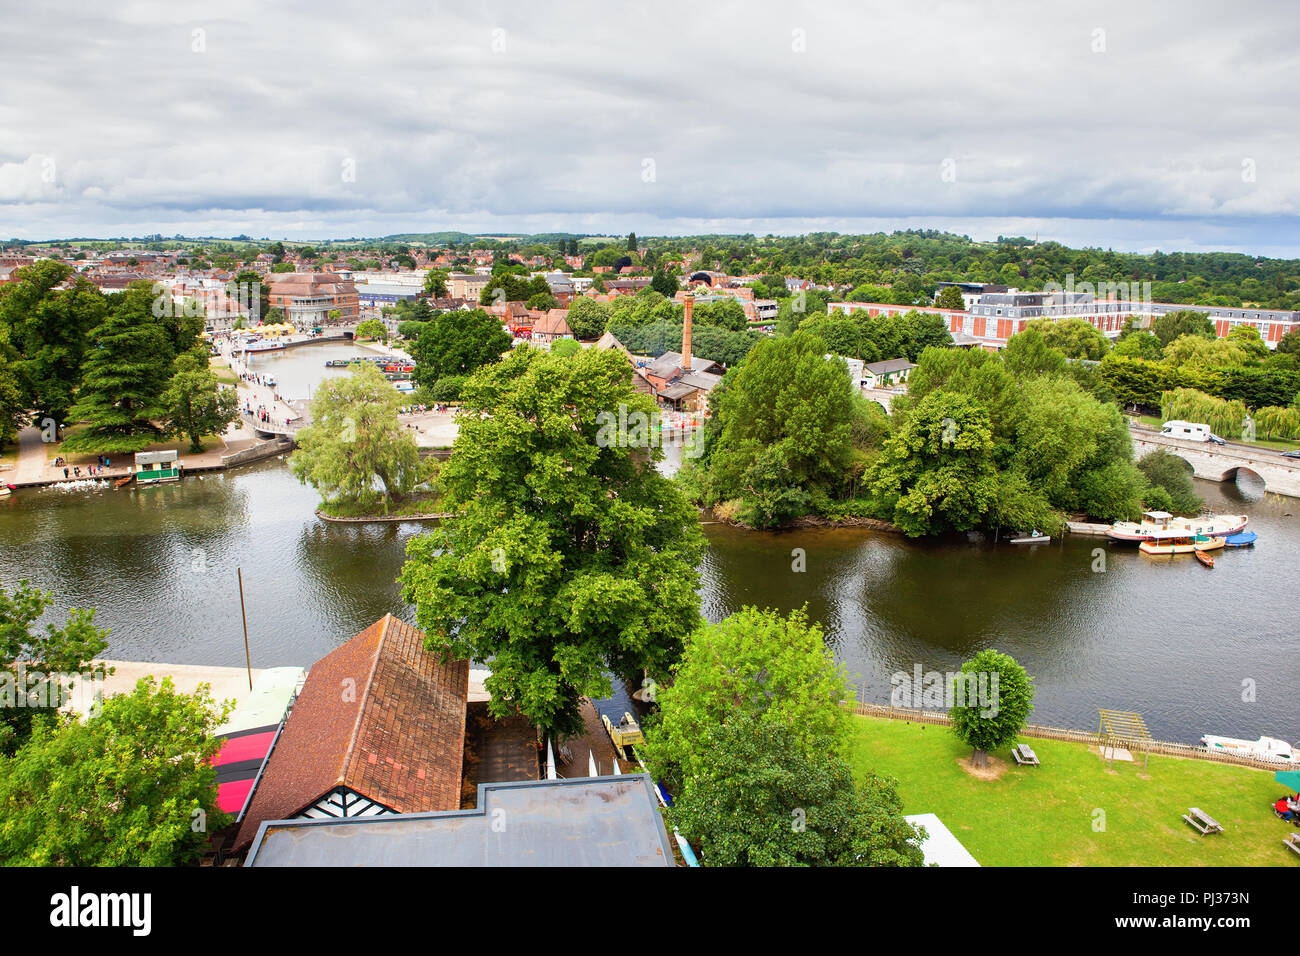 Elevated view of Stratford-Upon-Avon, Warwickhire, England, the birthplace of William Shakespeare, selective focus - Stock Image